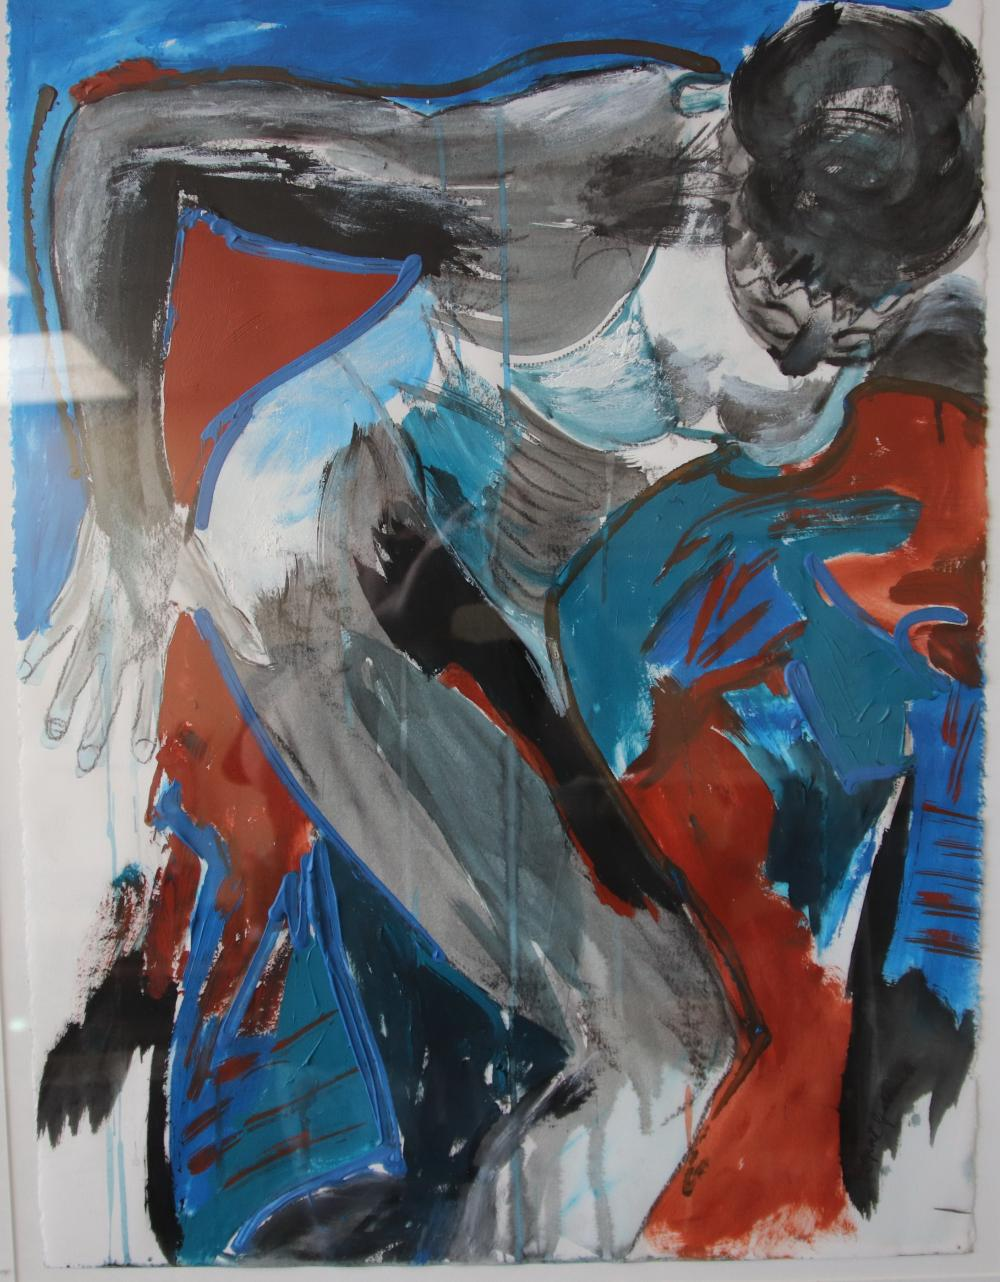 MARGARET GOLDSMITH WOMAN IN ACTION 1993 ACRYLIC AND MIXED MEDIA ON PAPER 76 X 56.5